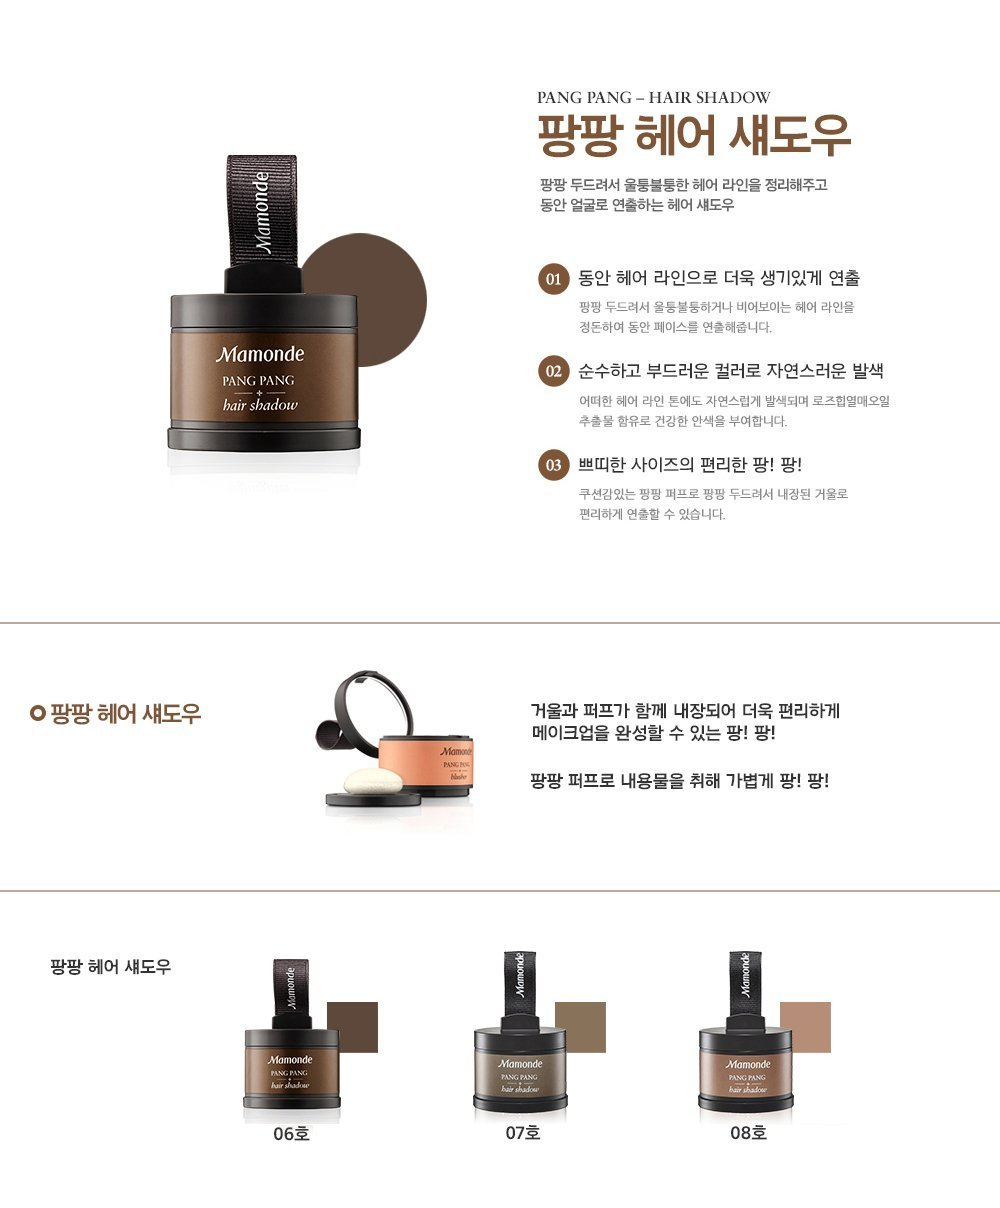 Amazon.com: [Mamonde] Pang Pang Hair Shadow 4g - #6 Dark Brown ...